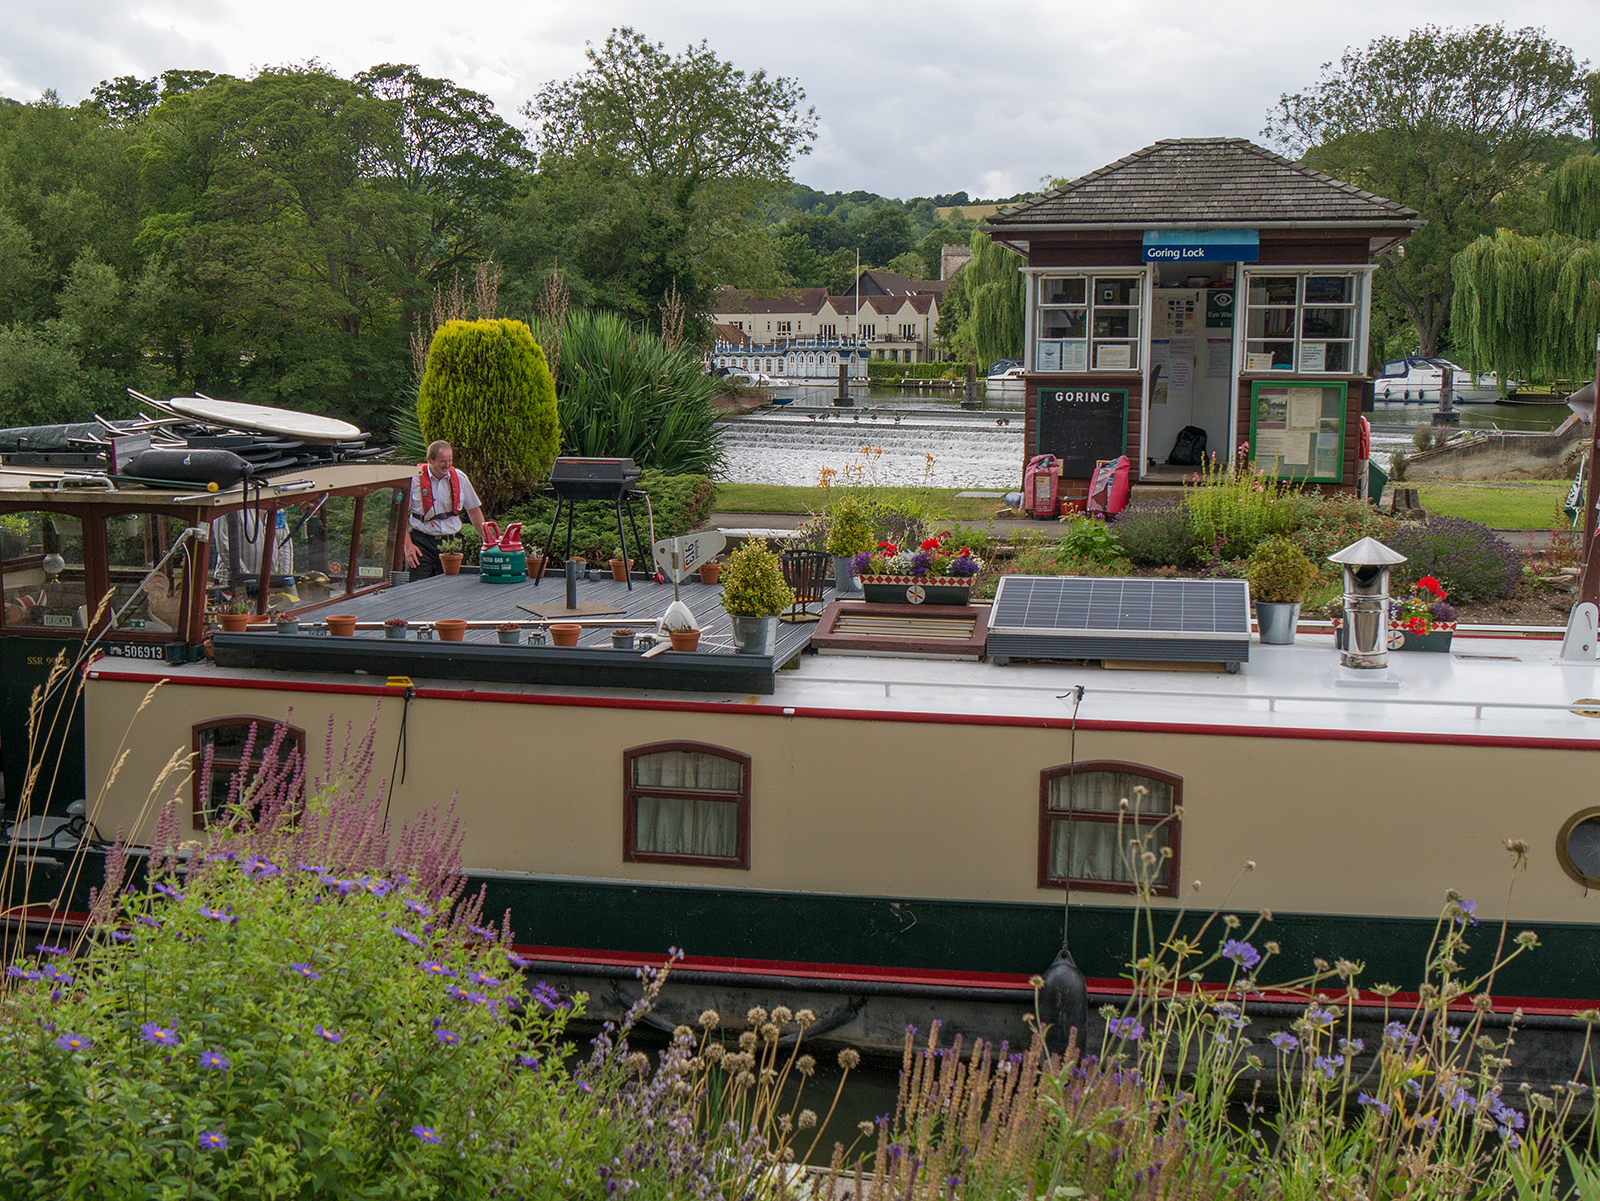 Goring lock in use